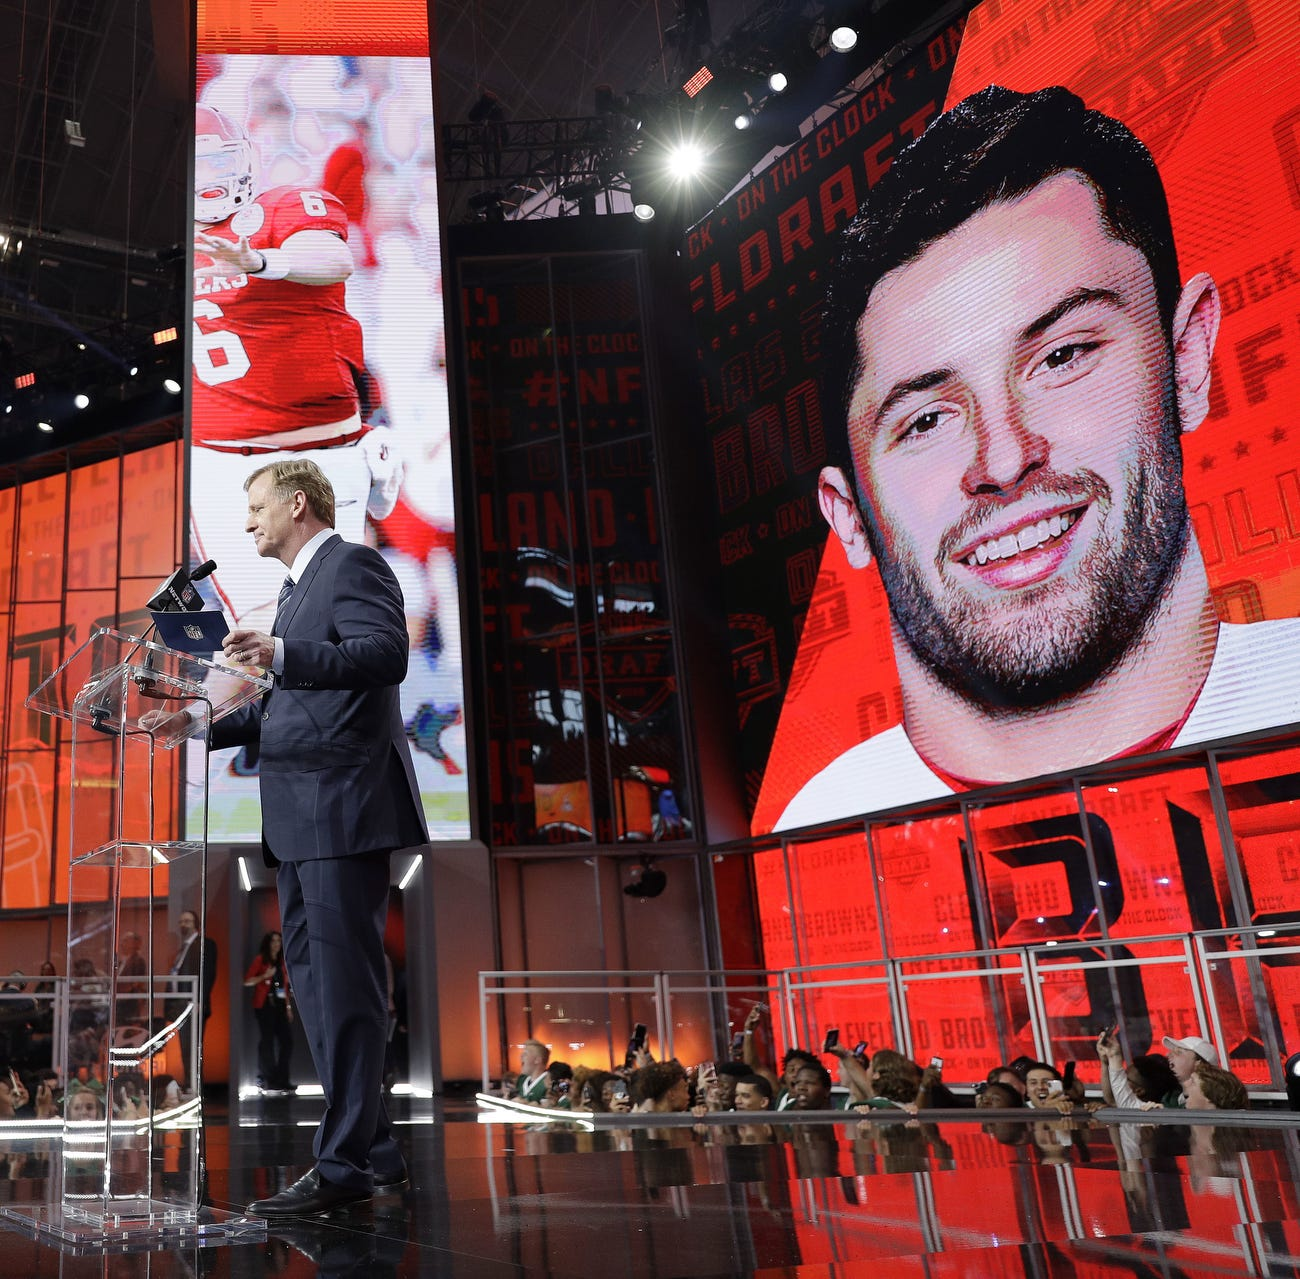 Commissioner Roger Goodell speaks at the podium after the Cleveland Browns selected Oklahoma's Baker Mayfield as their pick during the first round of the NFL football draft April 26, 2018 in Arlington, Texas.